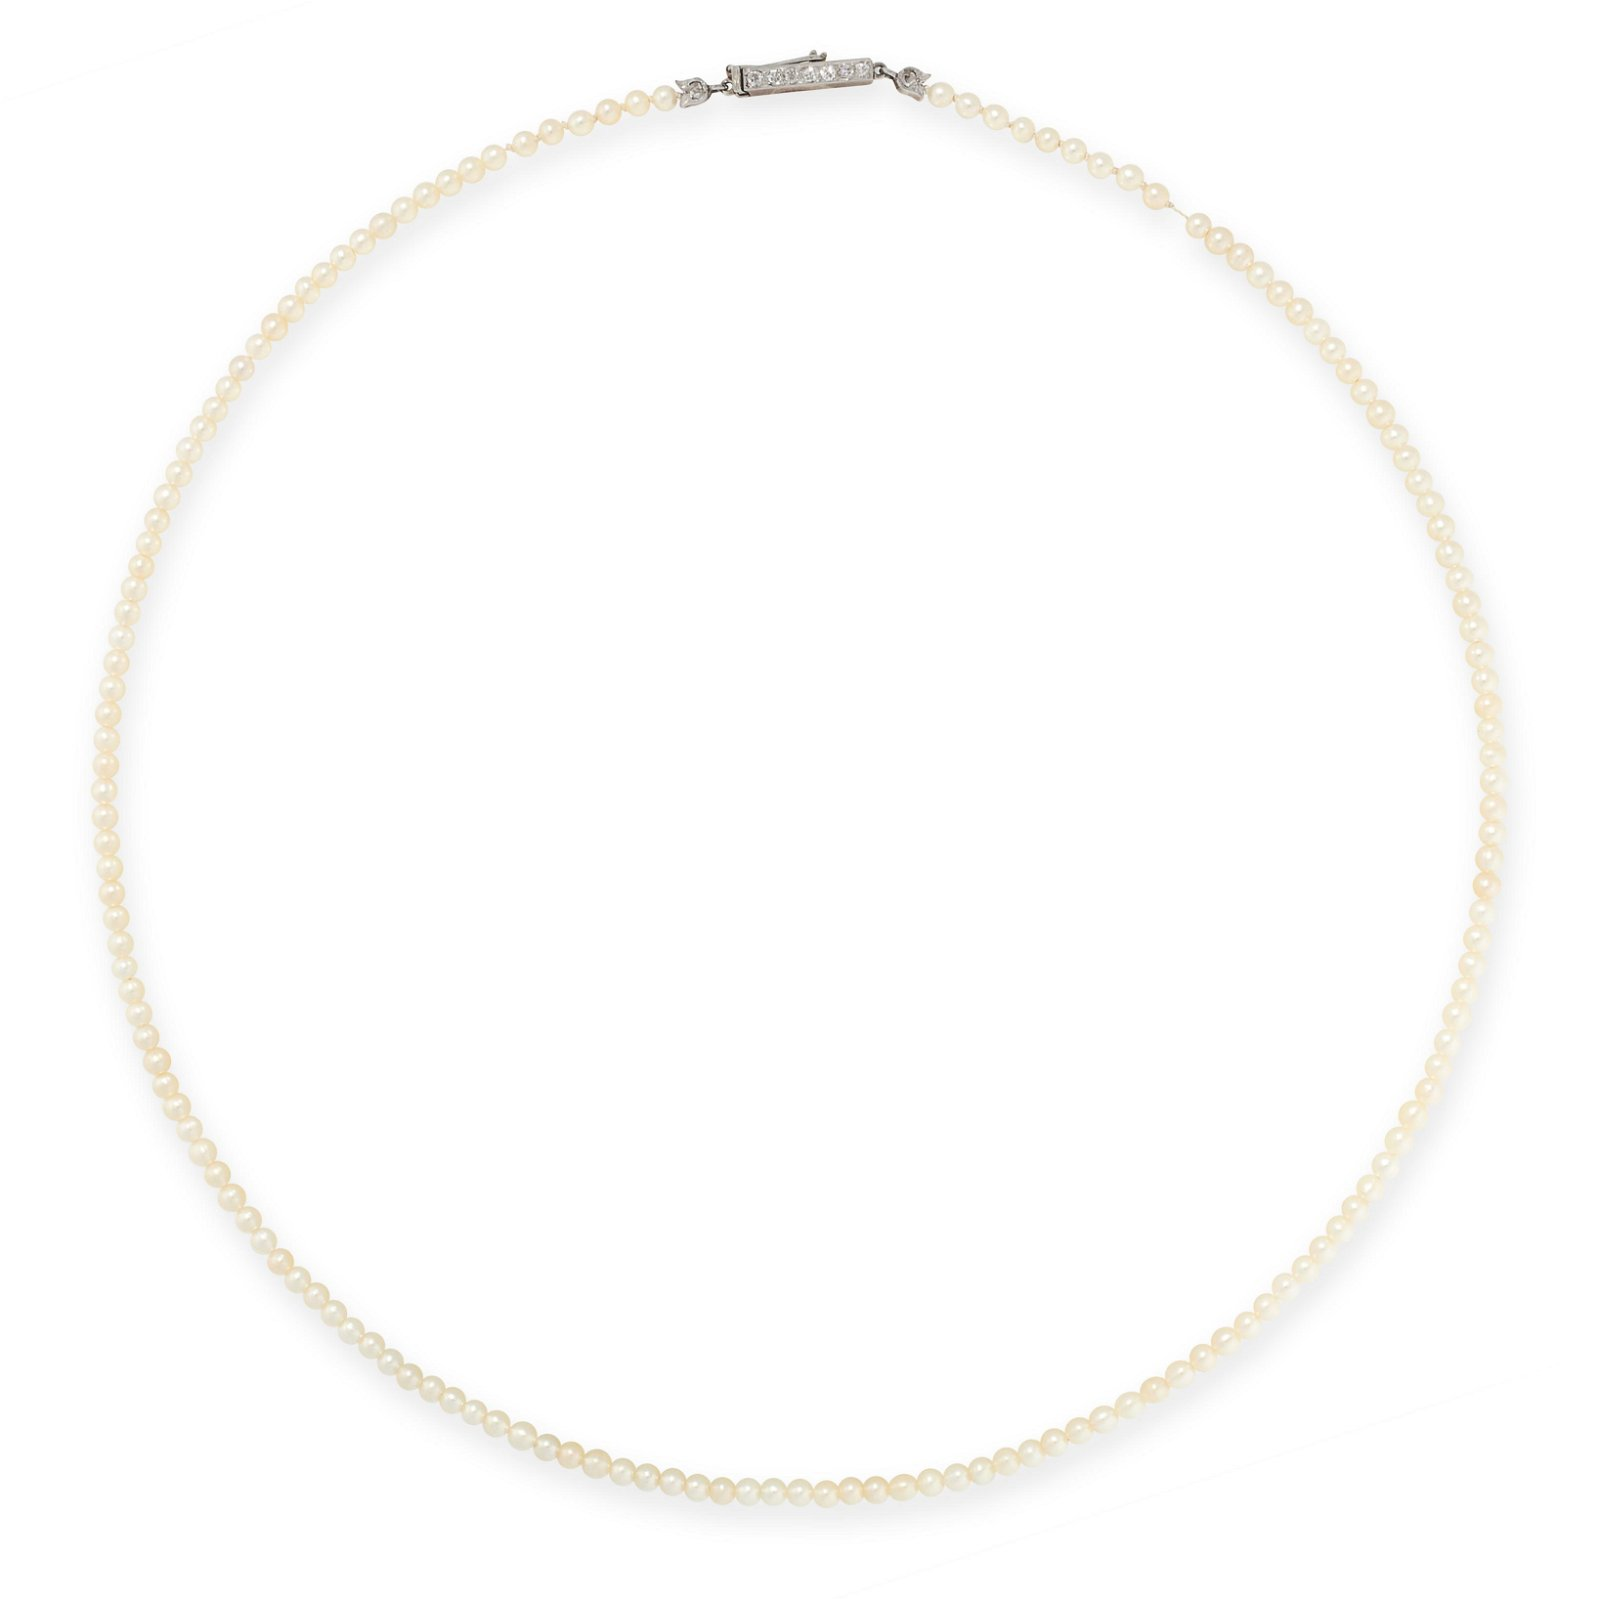 AN ANTIQUE NATURAL PEARL AND DIAMOND NECKLACE, EARLY